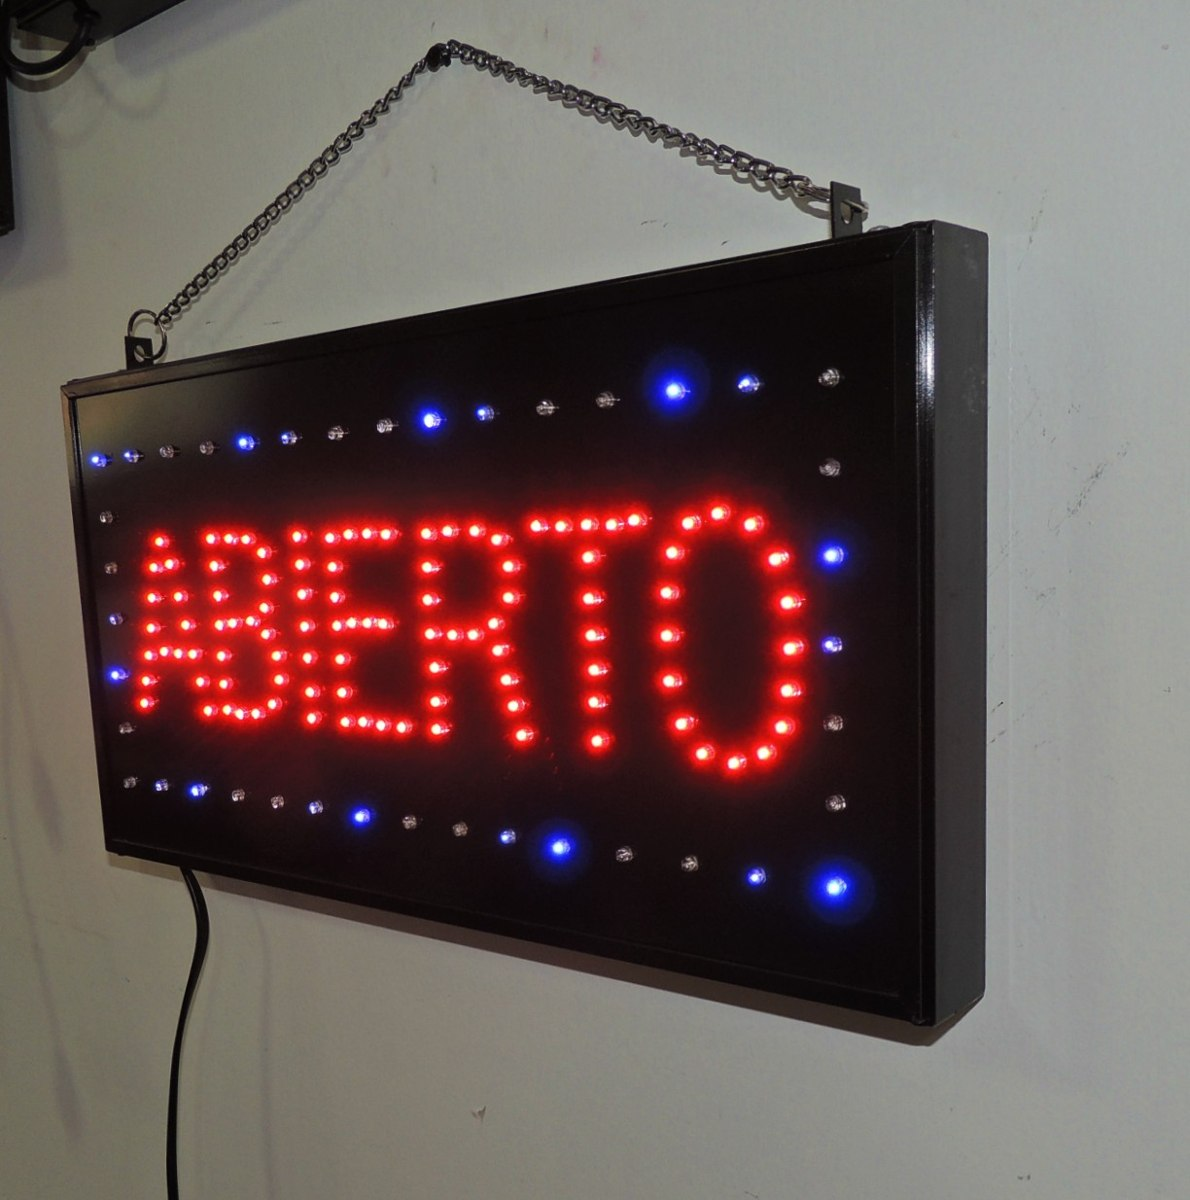 anuncio luminoso de led abierto letreros luminosos no